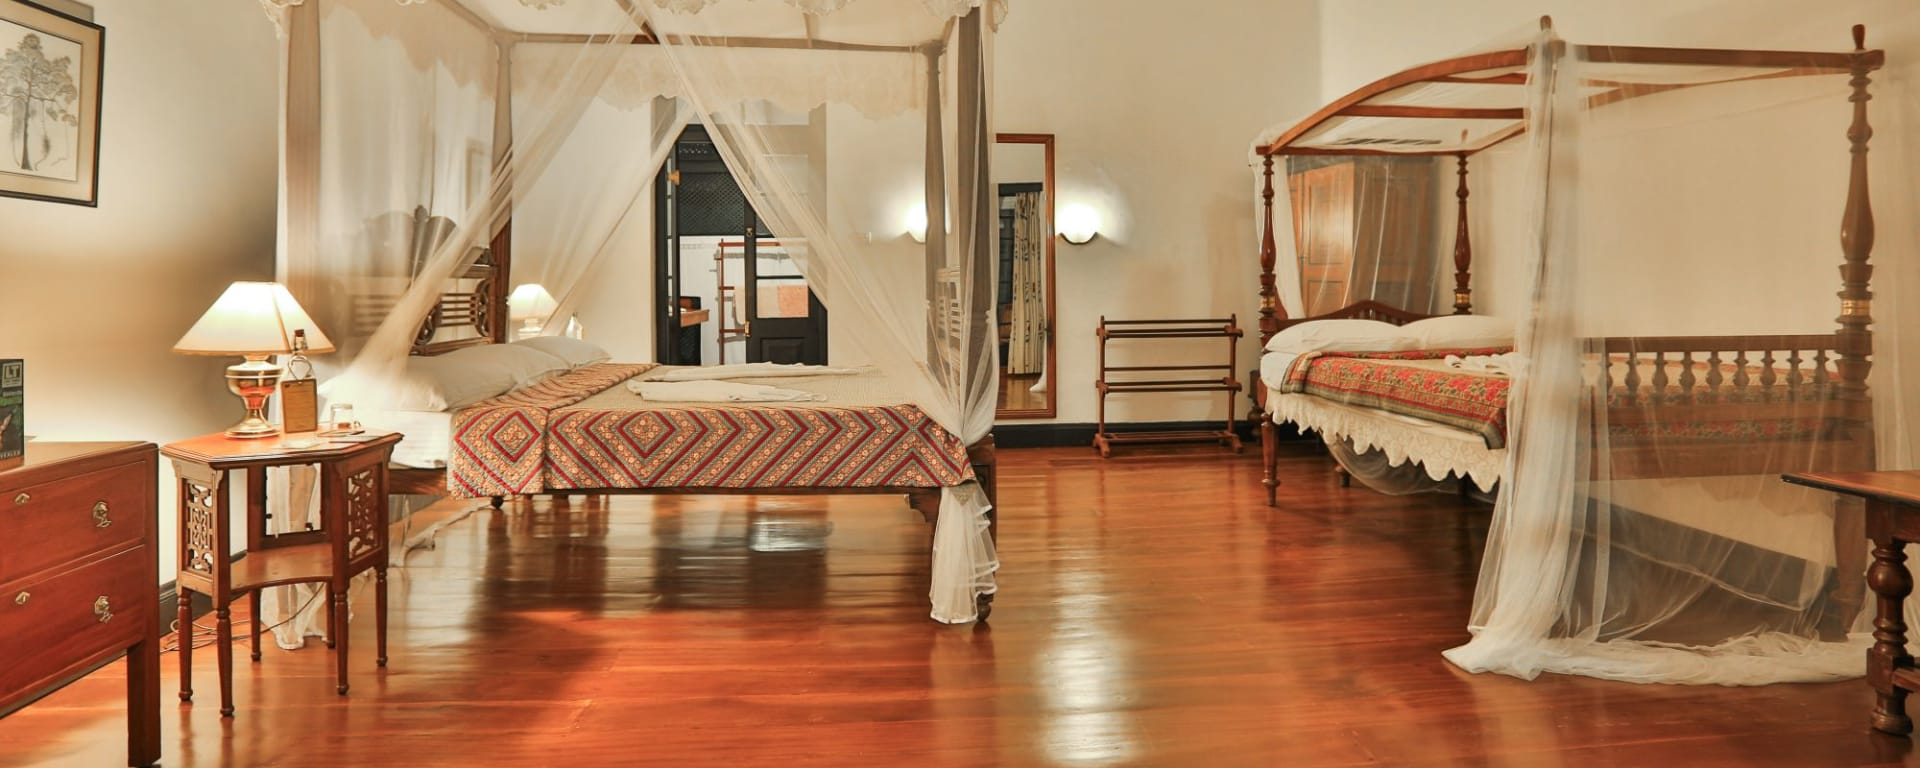 Horathapola Coconut Estate in Yakvila: Standard | Family Suite Mada Camare